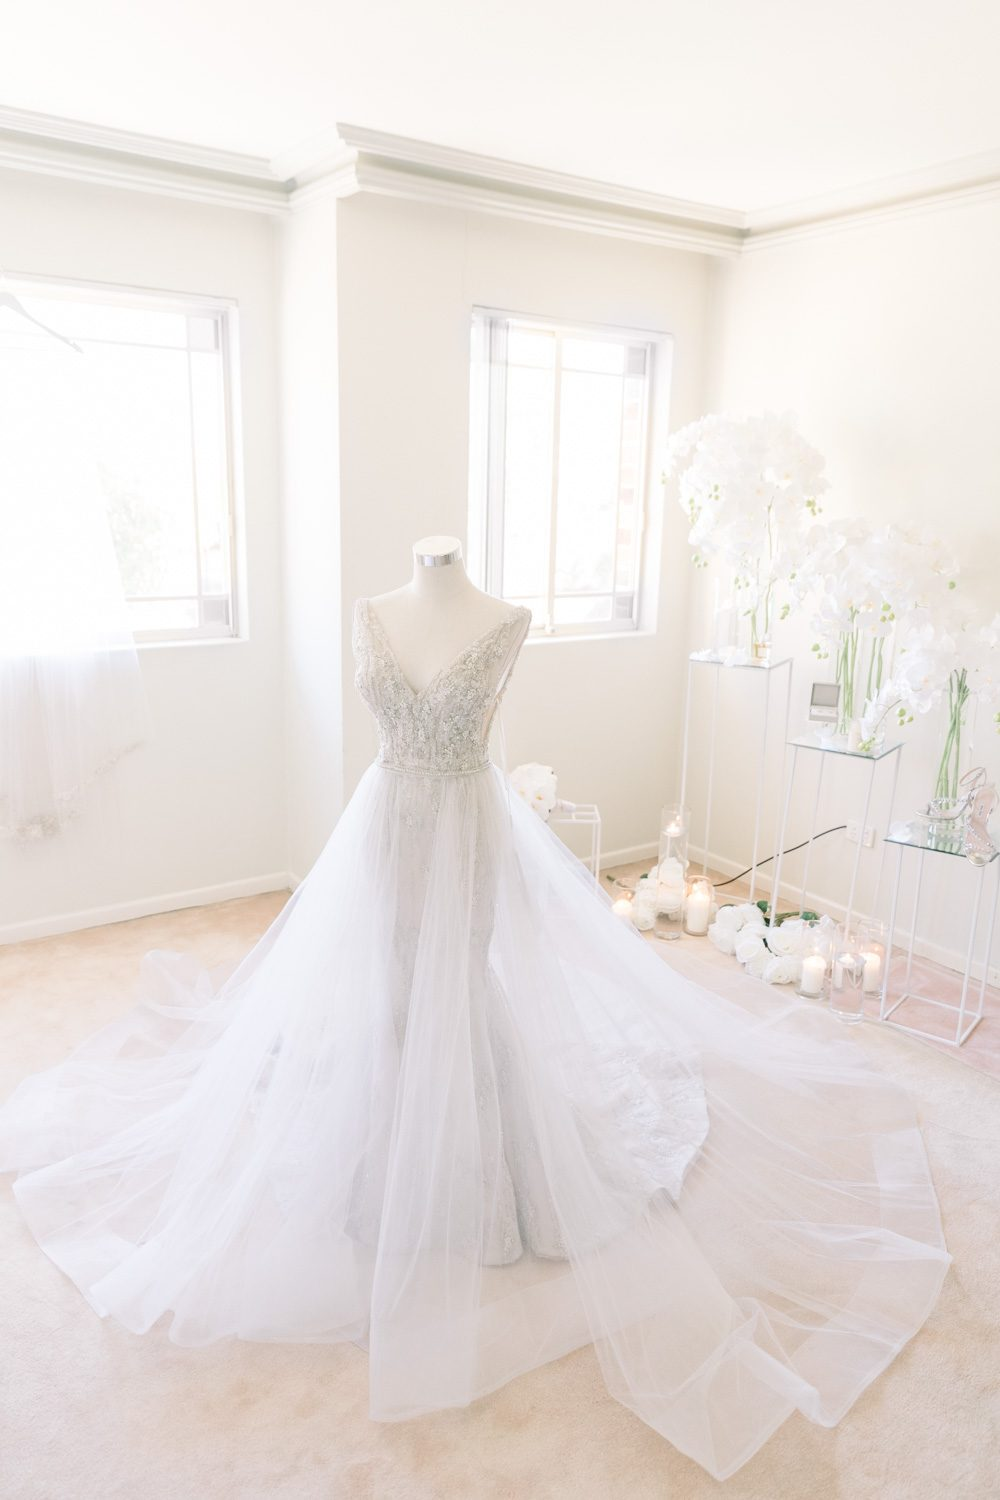 a photo of wedding gown at the bride's place